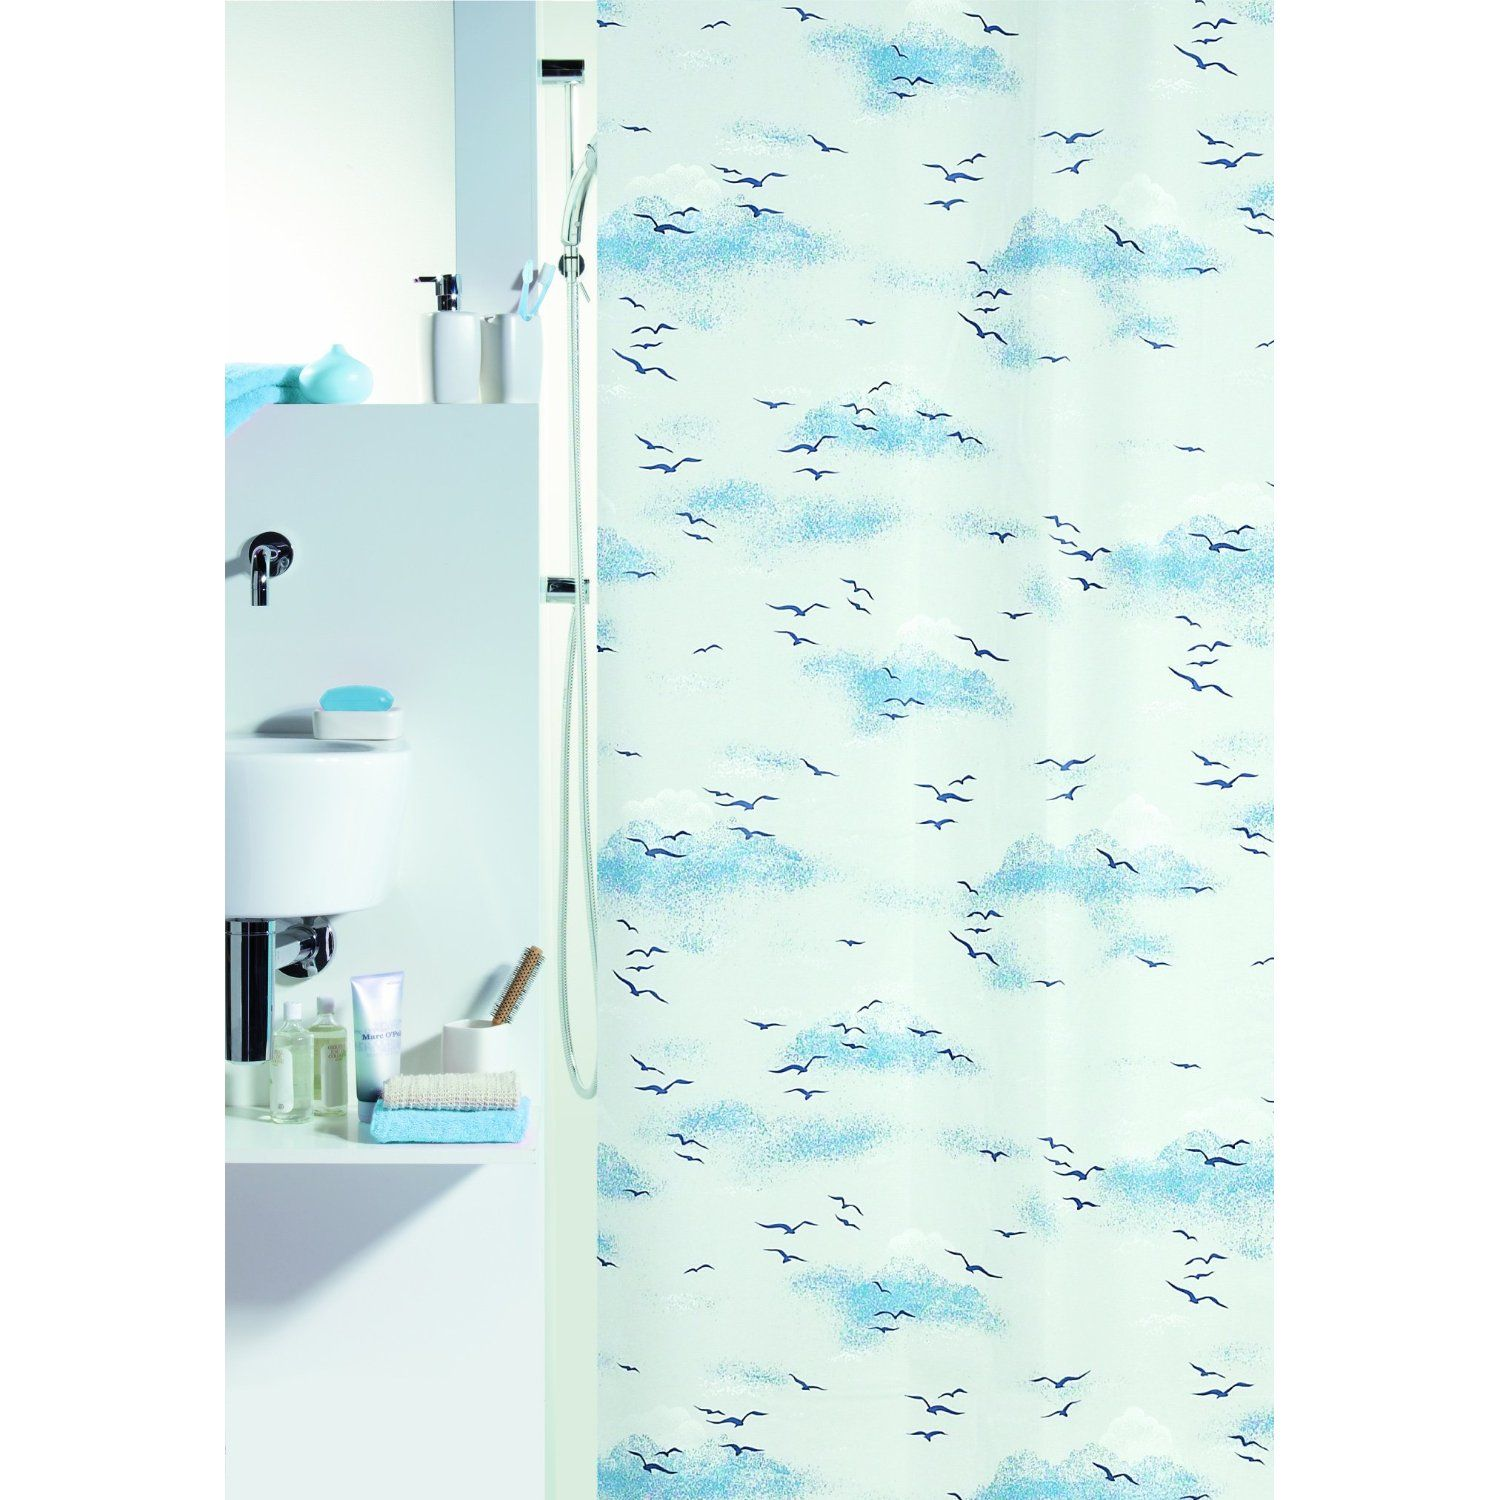 curtain curtains vintage farm a barn org plank cleaning plastic cleaner rustic door litvinenkomurder awesome shower wood